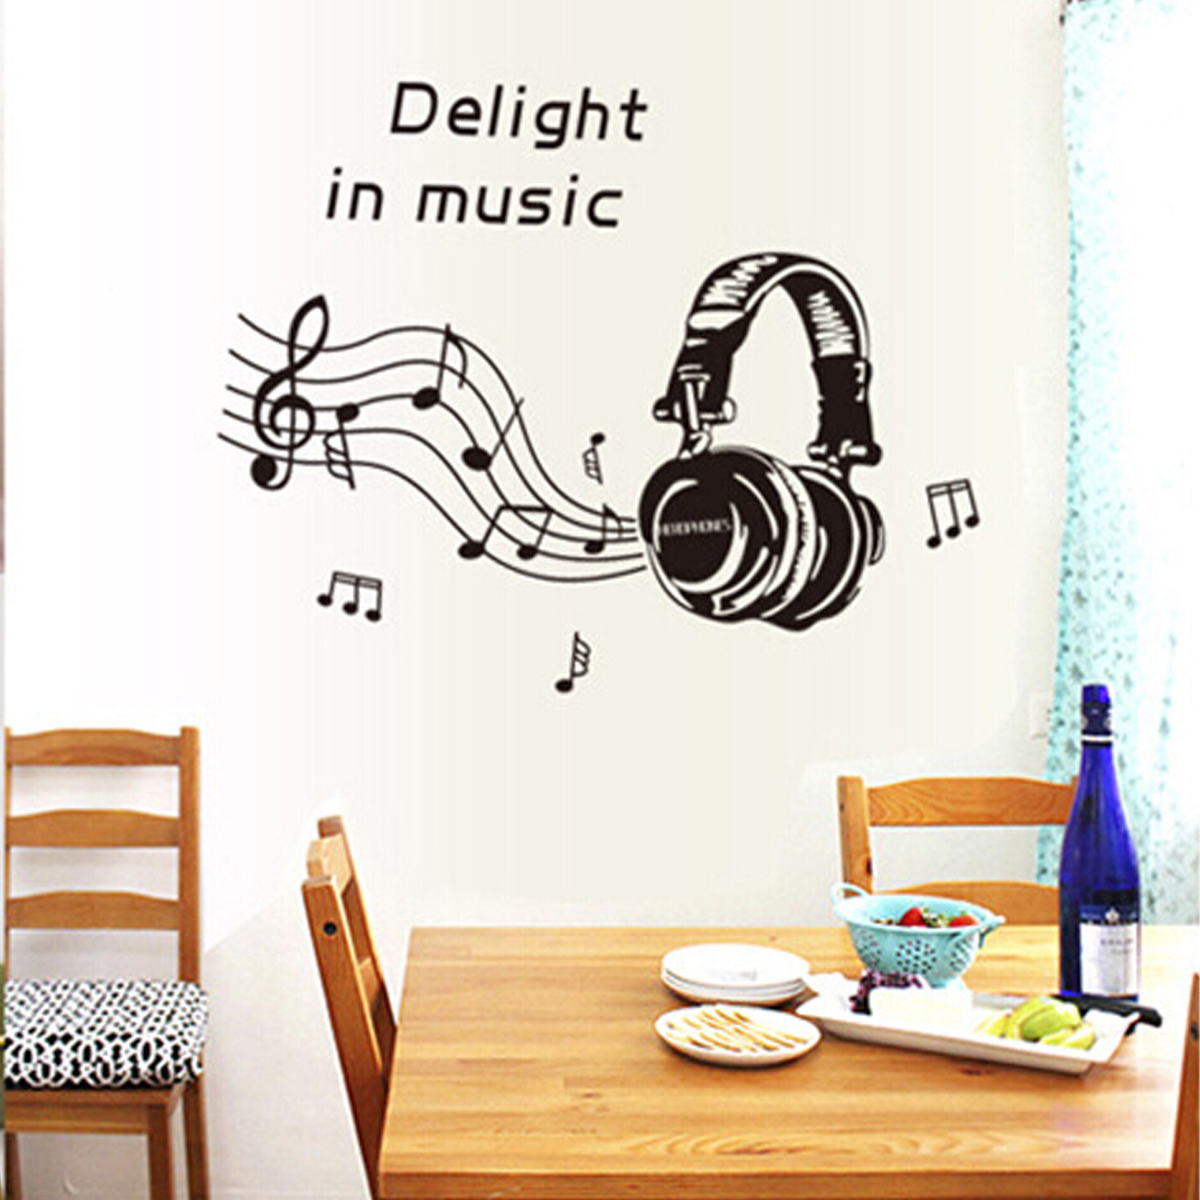 Family Wall Decor Diy : Family diy quote removable art wall sticker mirror decal